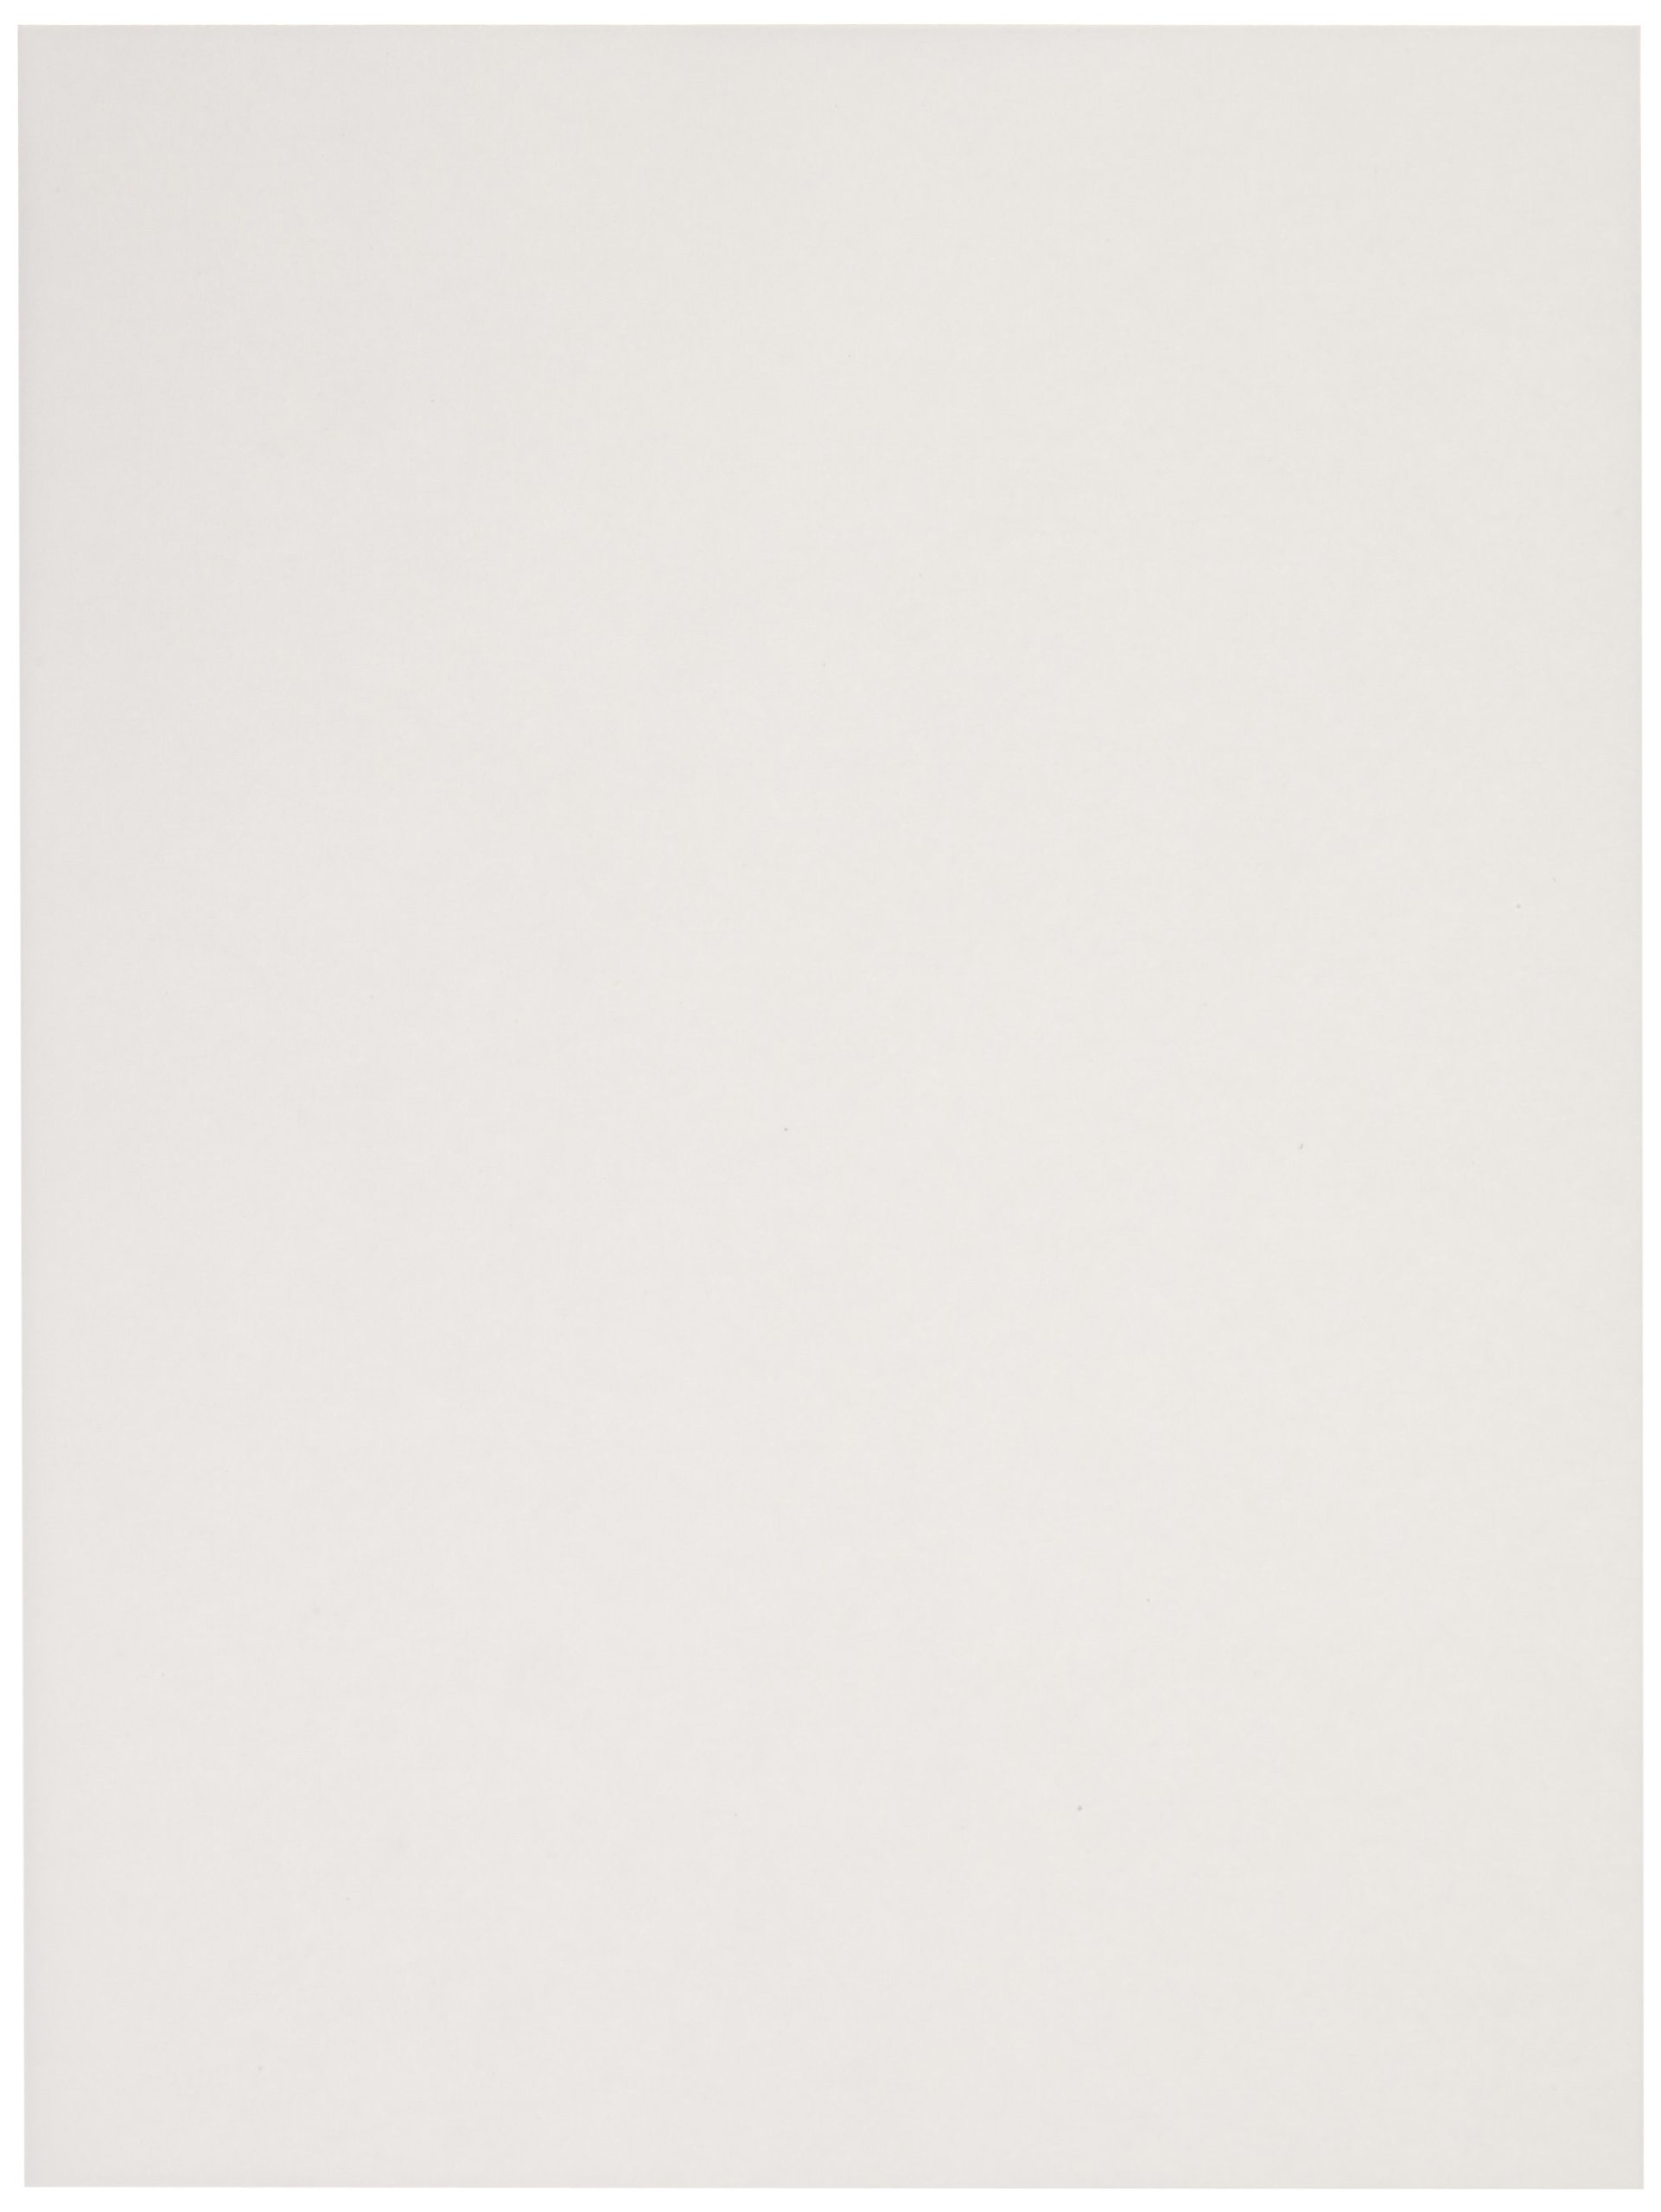 Sax Sulphite Drawing Paper, 70 lb, 9 x 12 Inches, Extra-White